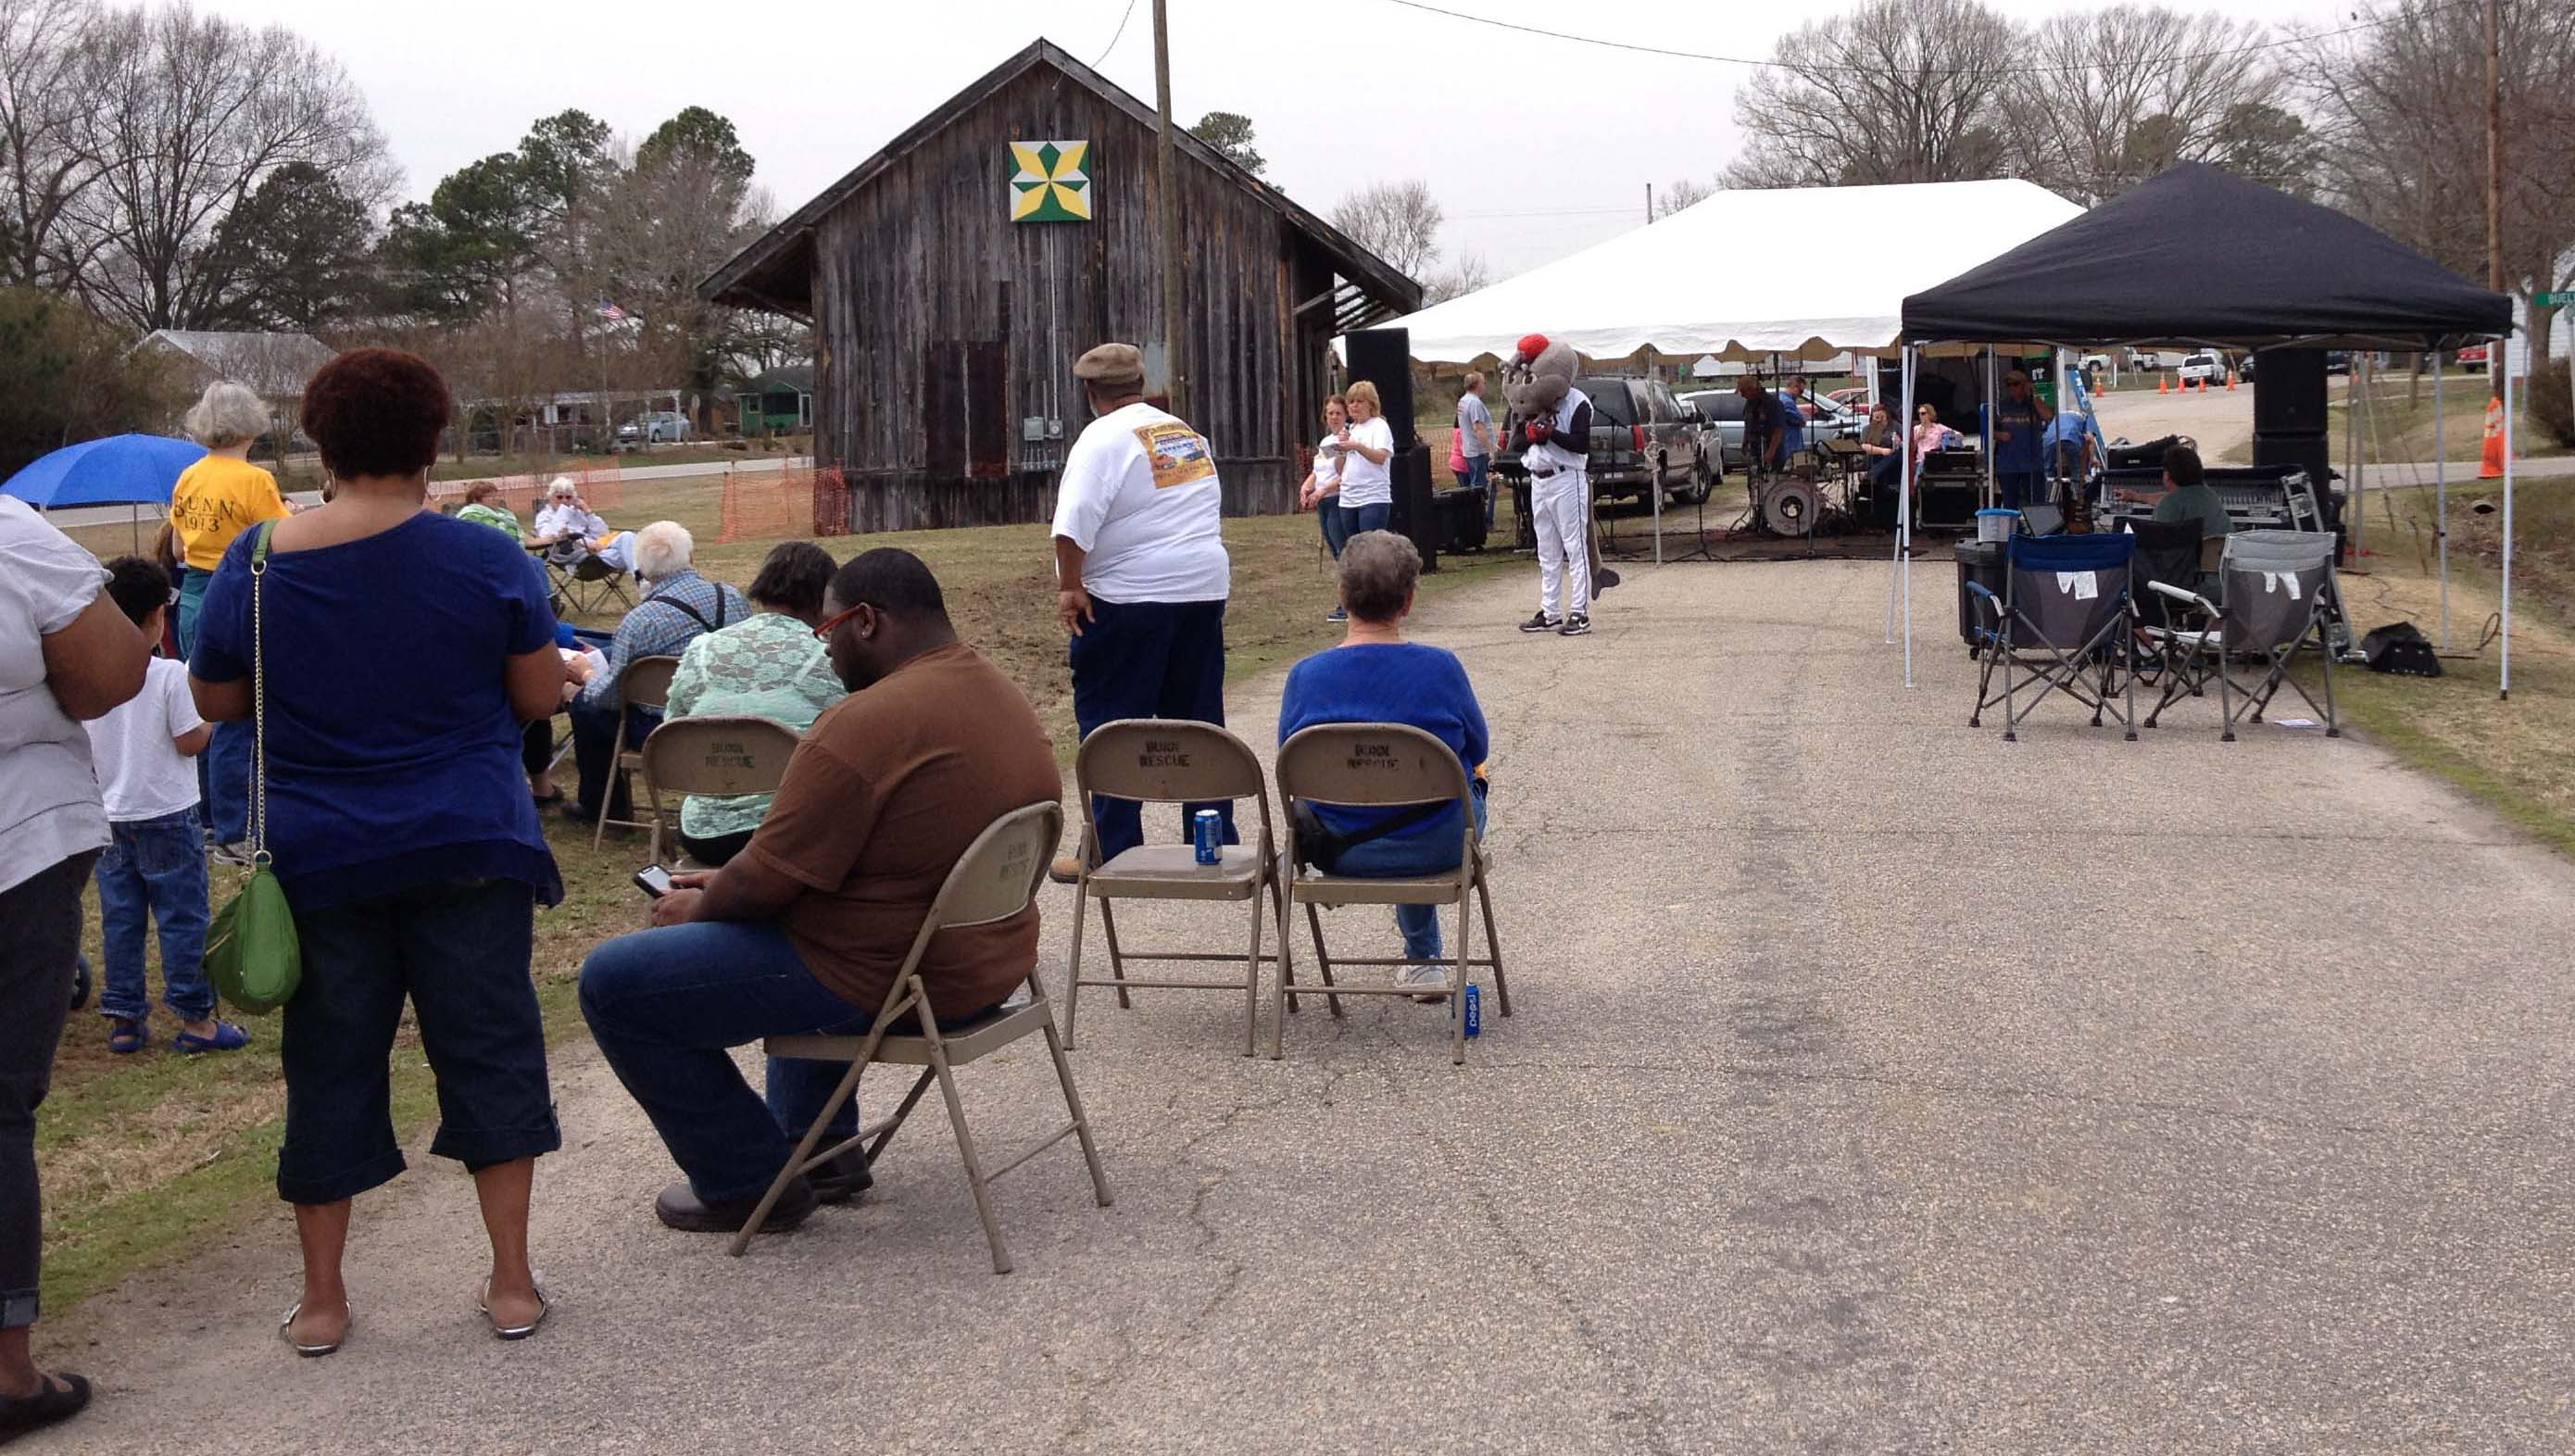 A shot of a Railroad Street event in 2014. Source: Frank and Kay Whatley.